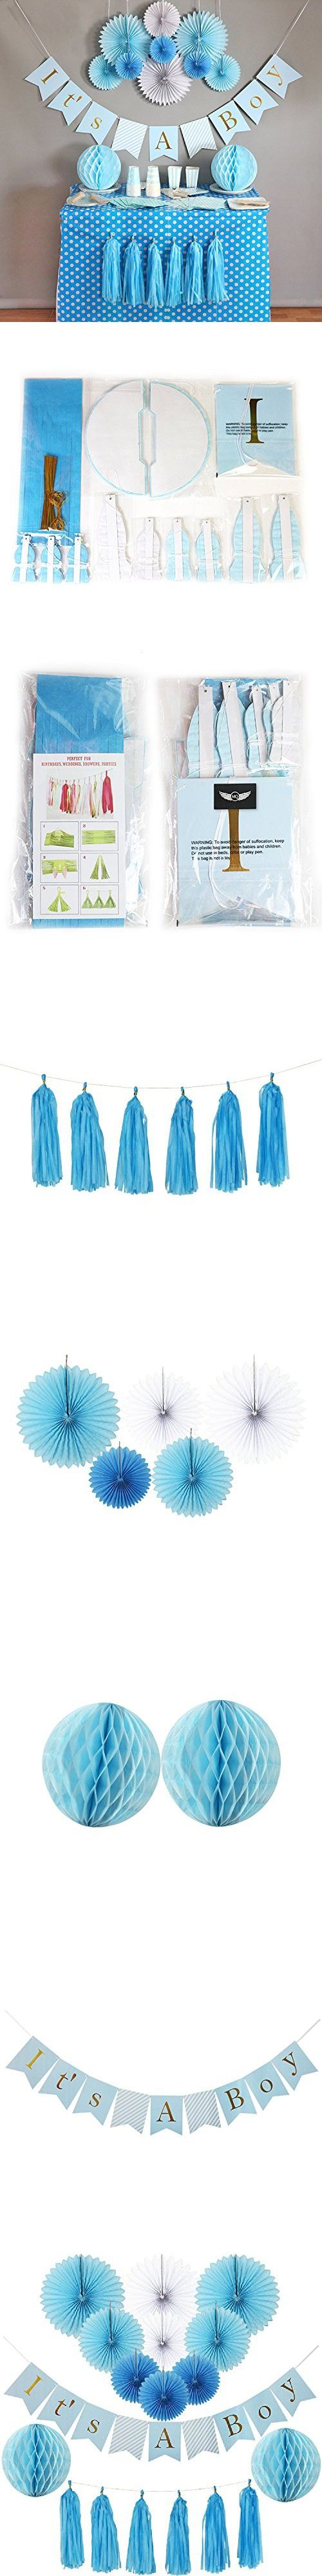 Baby Shower Decorations for Boy, Its A Boy, Banner, Tissue Paper, Fans, Honeycomb Paper Balls, Tassels, Blue, 13pcs., Gold Foil, Hanging, Party Supplies, Indoor/Outdoor